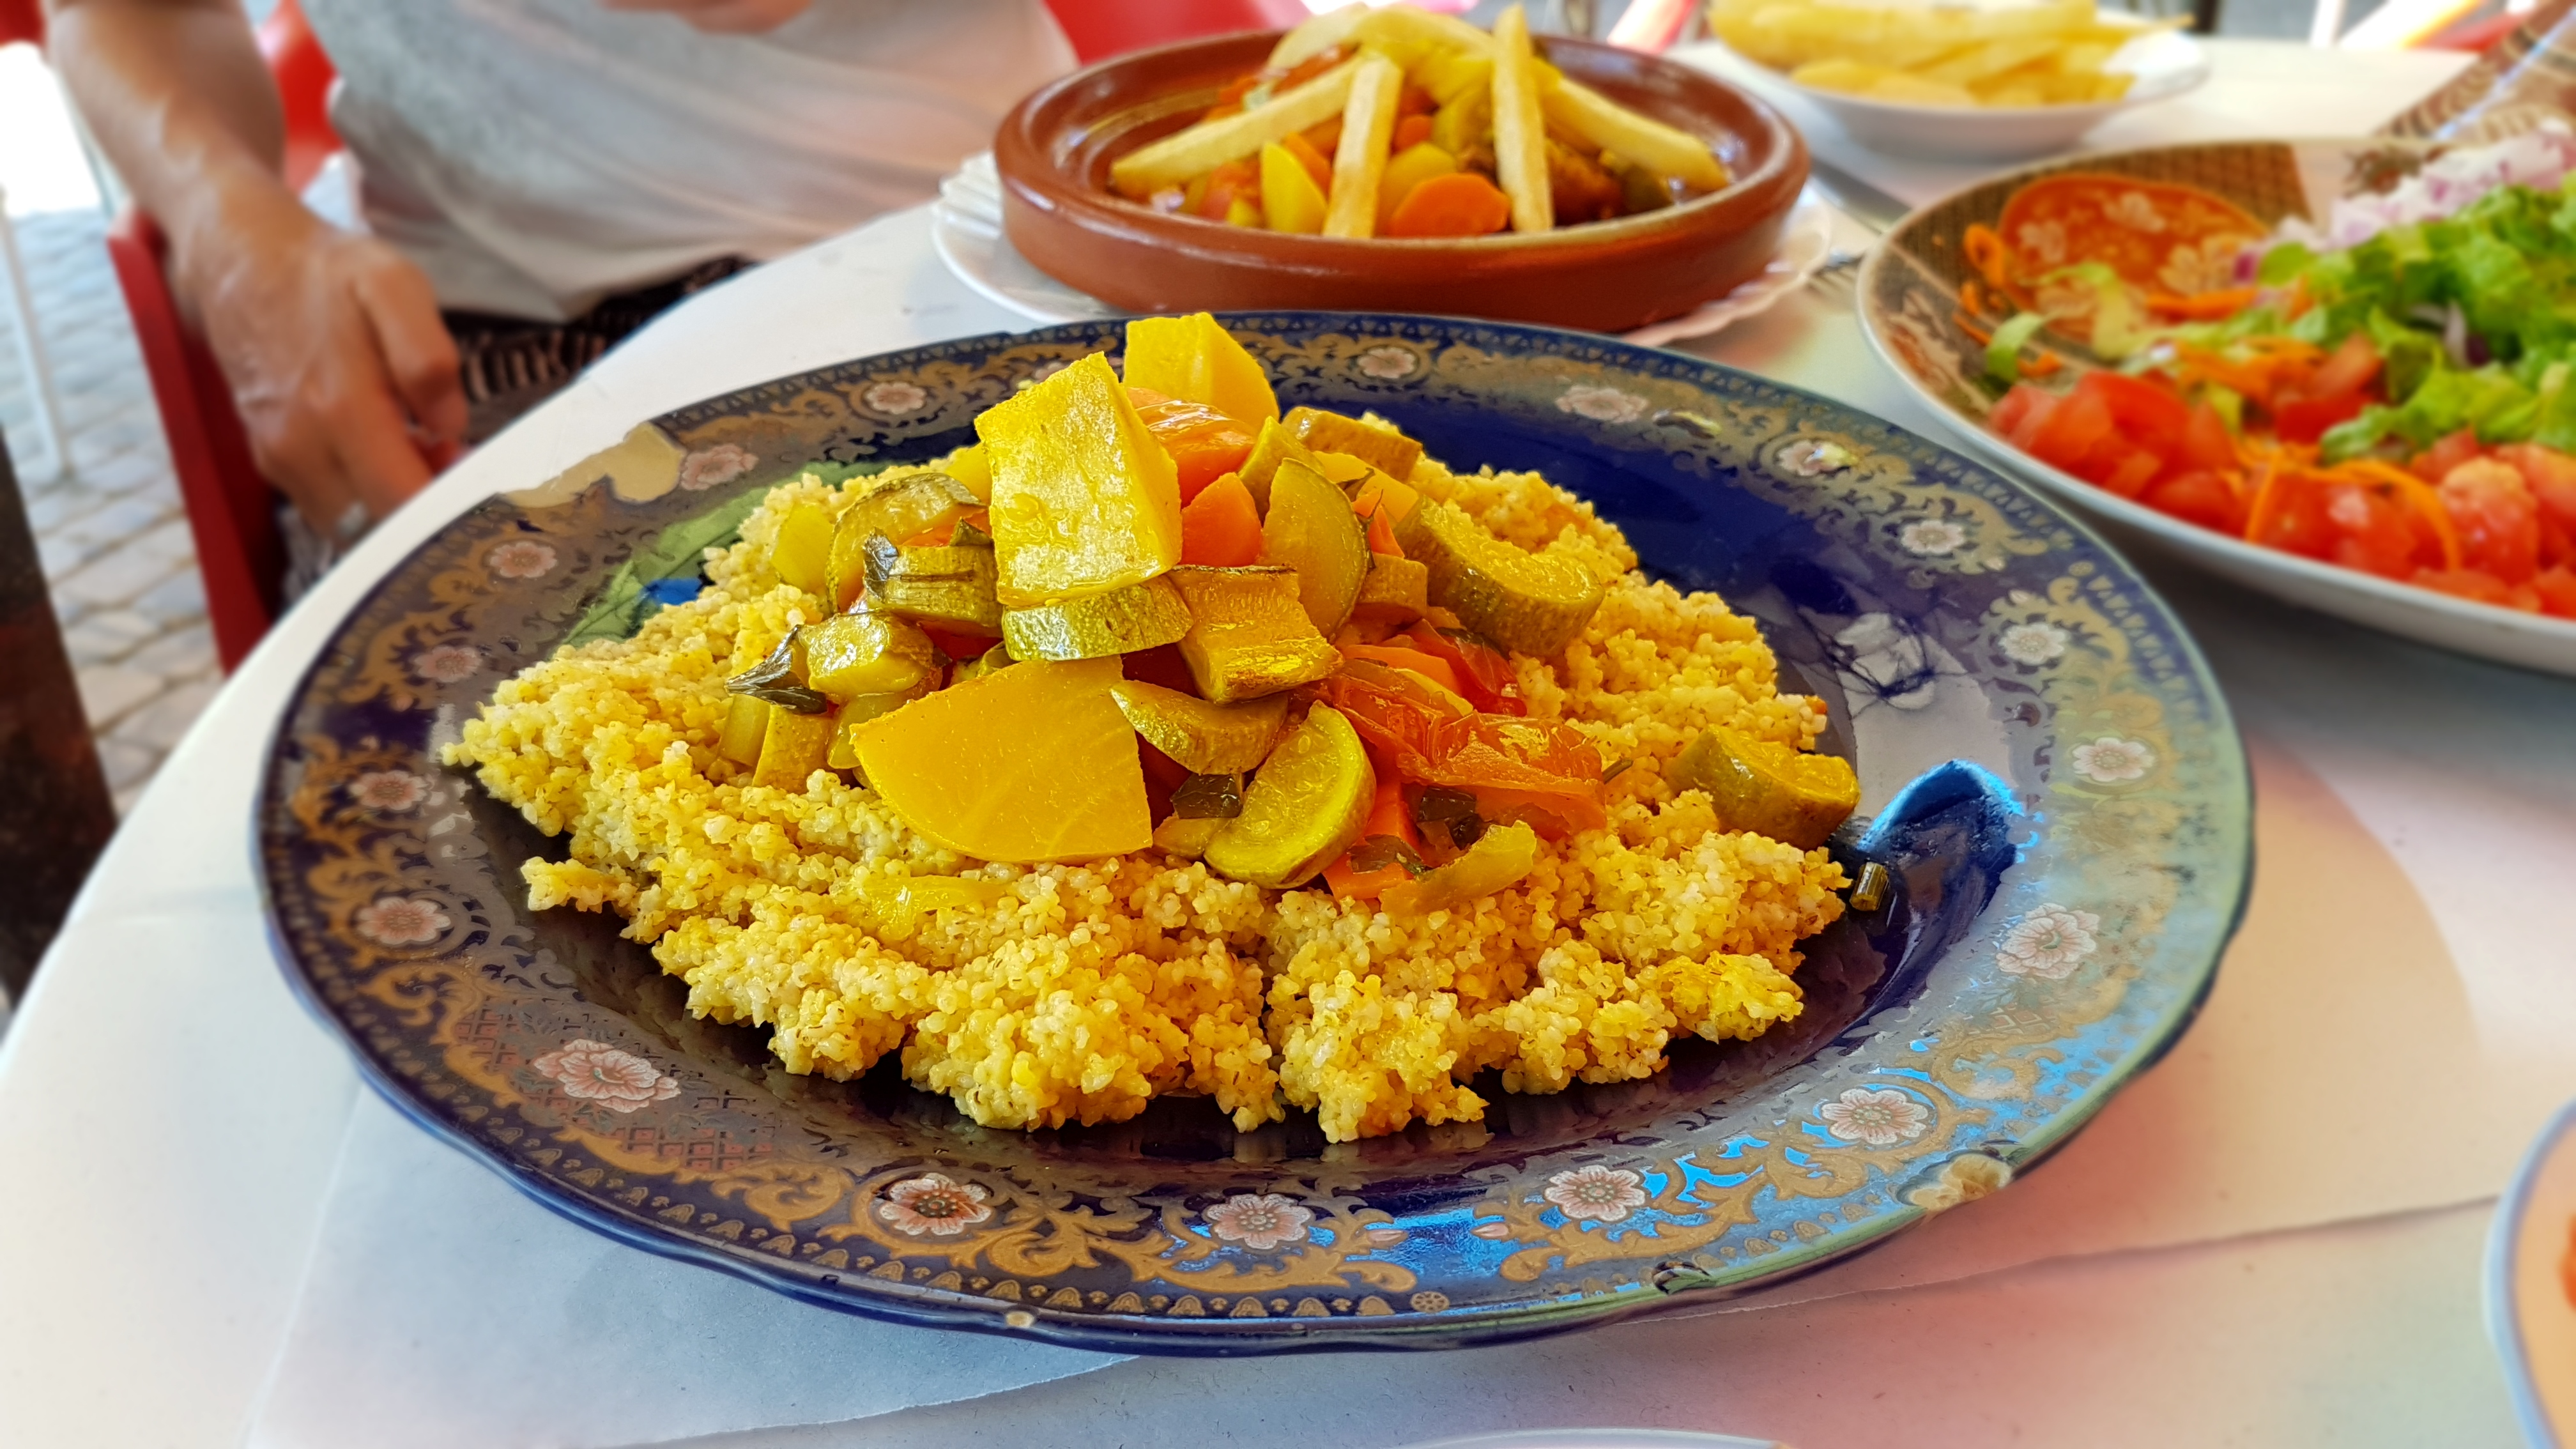 Coucous stacked with vegetables